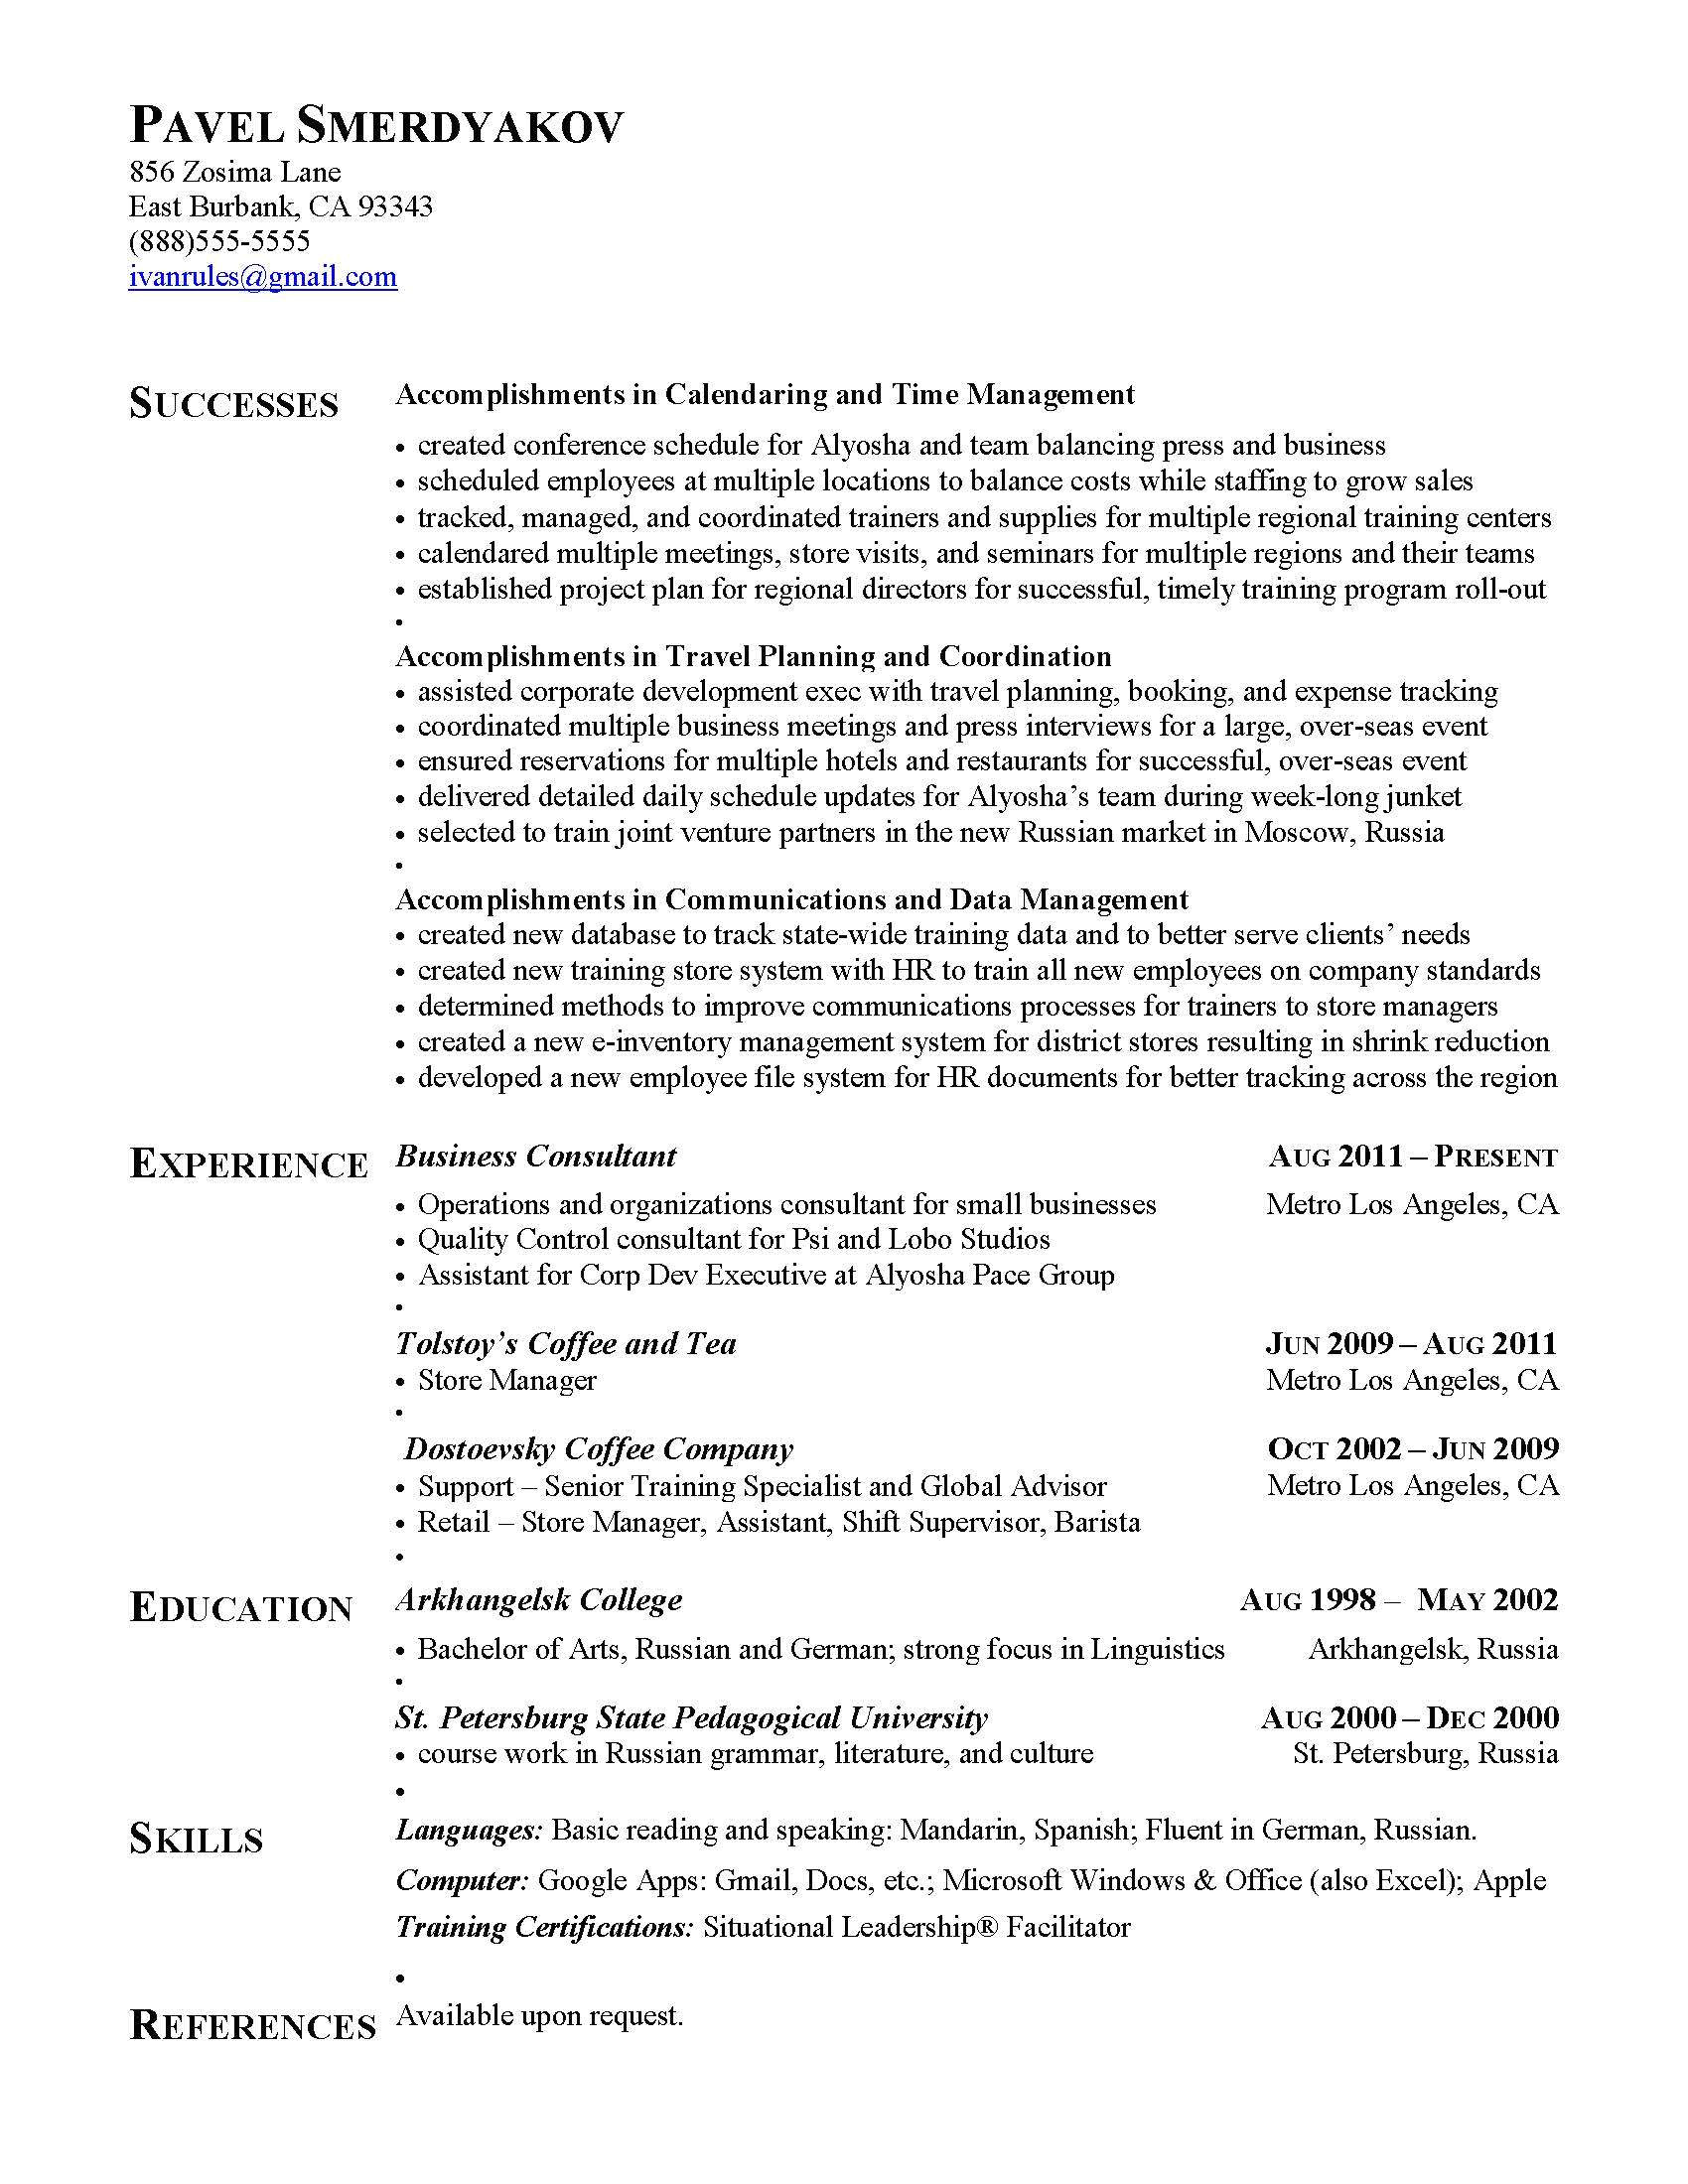 Sample Achievements In Resume for Experienced Achievement Resume